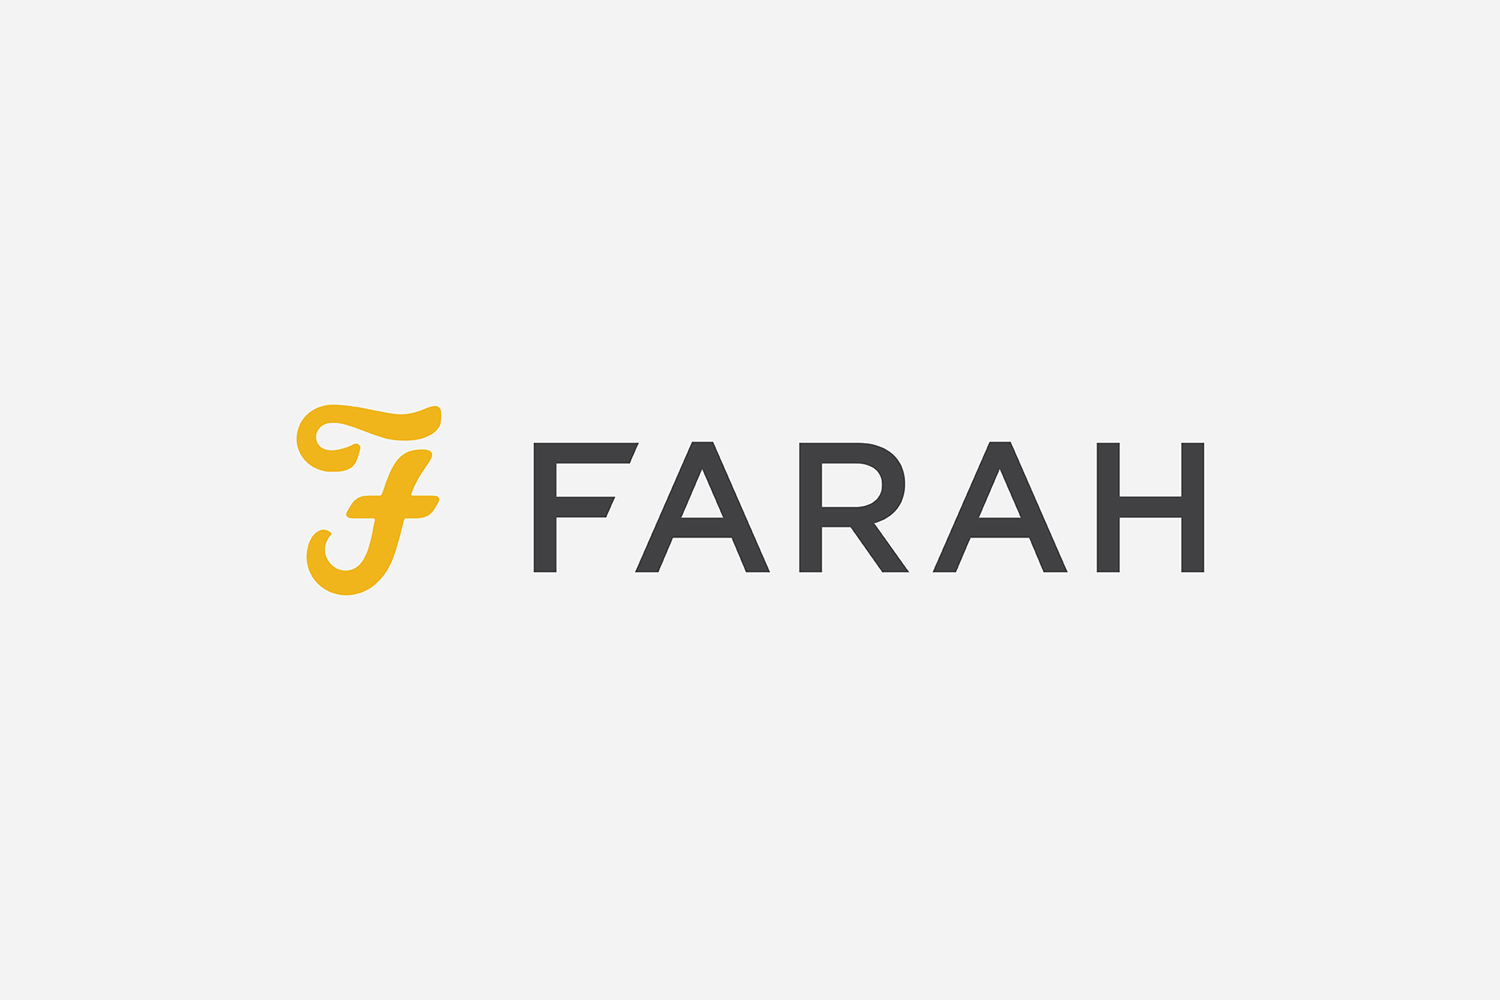 Logo for UK men's fashion brand Farah Farah by graphic design studio Post